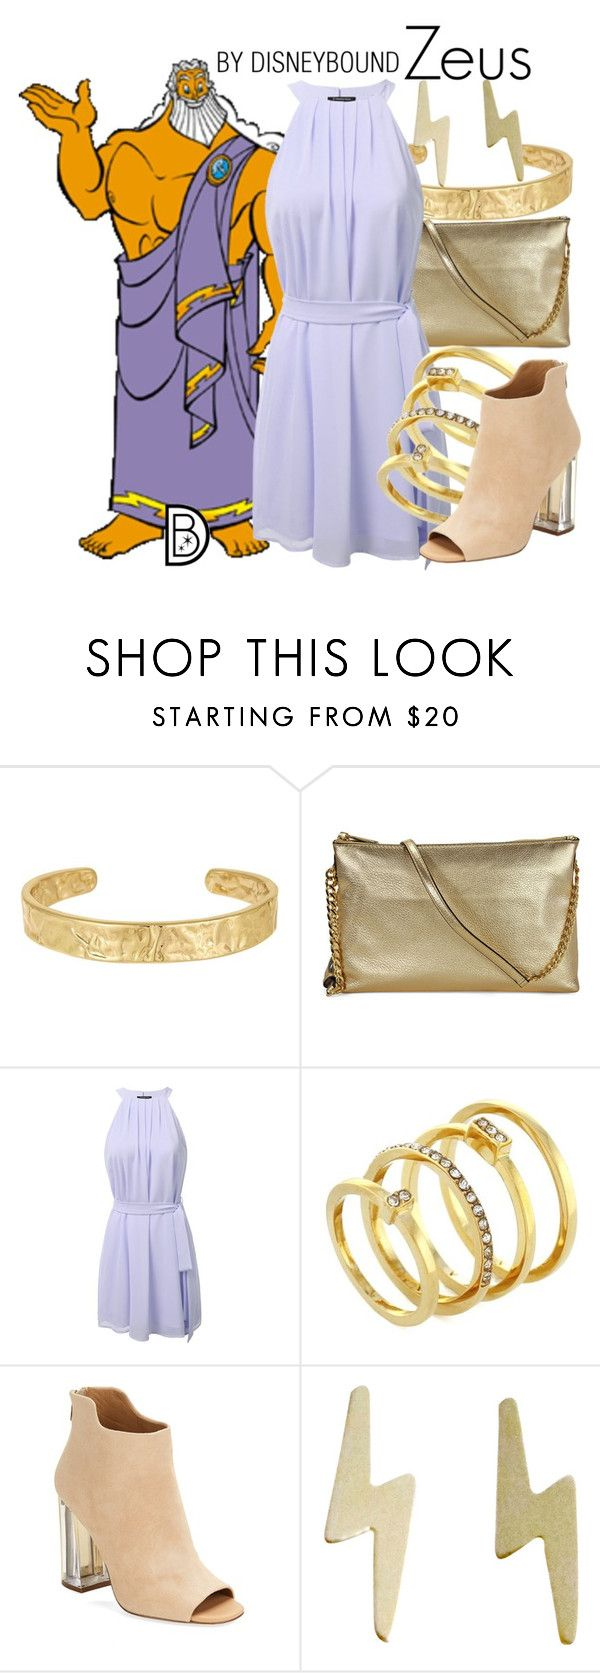 """Zeus"" by leslieakay ❤ liked on Polyvore featuring Sam Edelman, Michael Kors, Vince Camuto, Calvin Klein, Jessica Elliot, disney and disneybound"